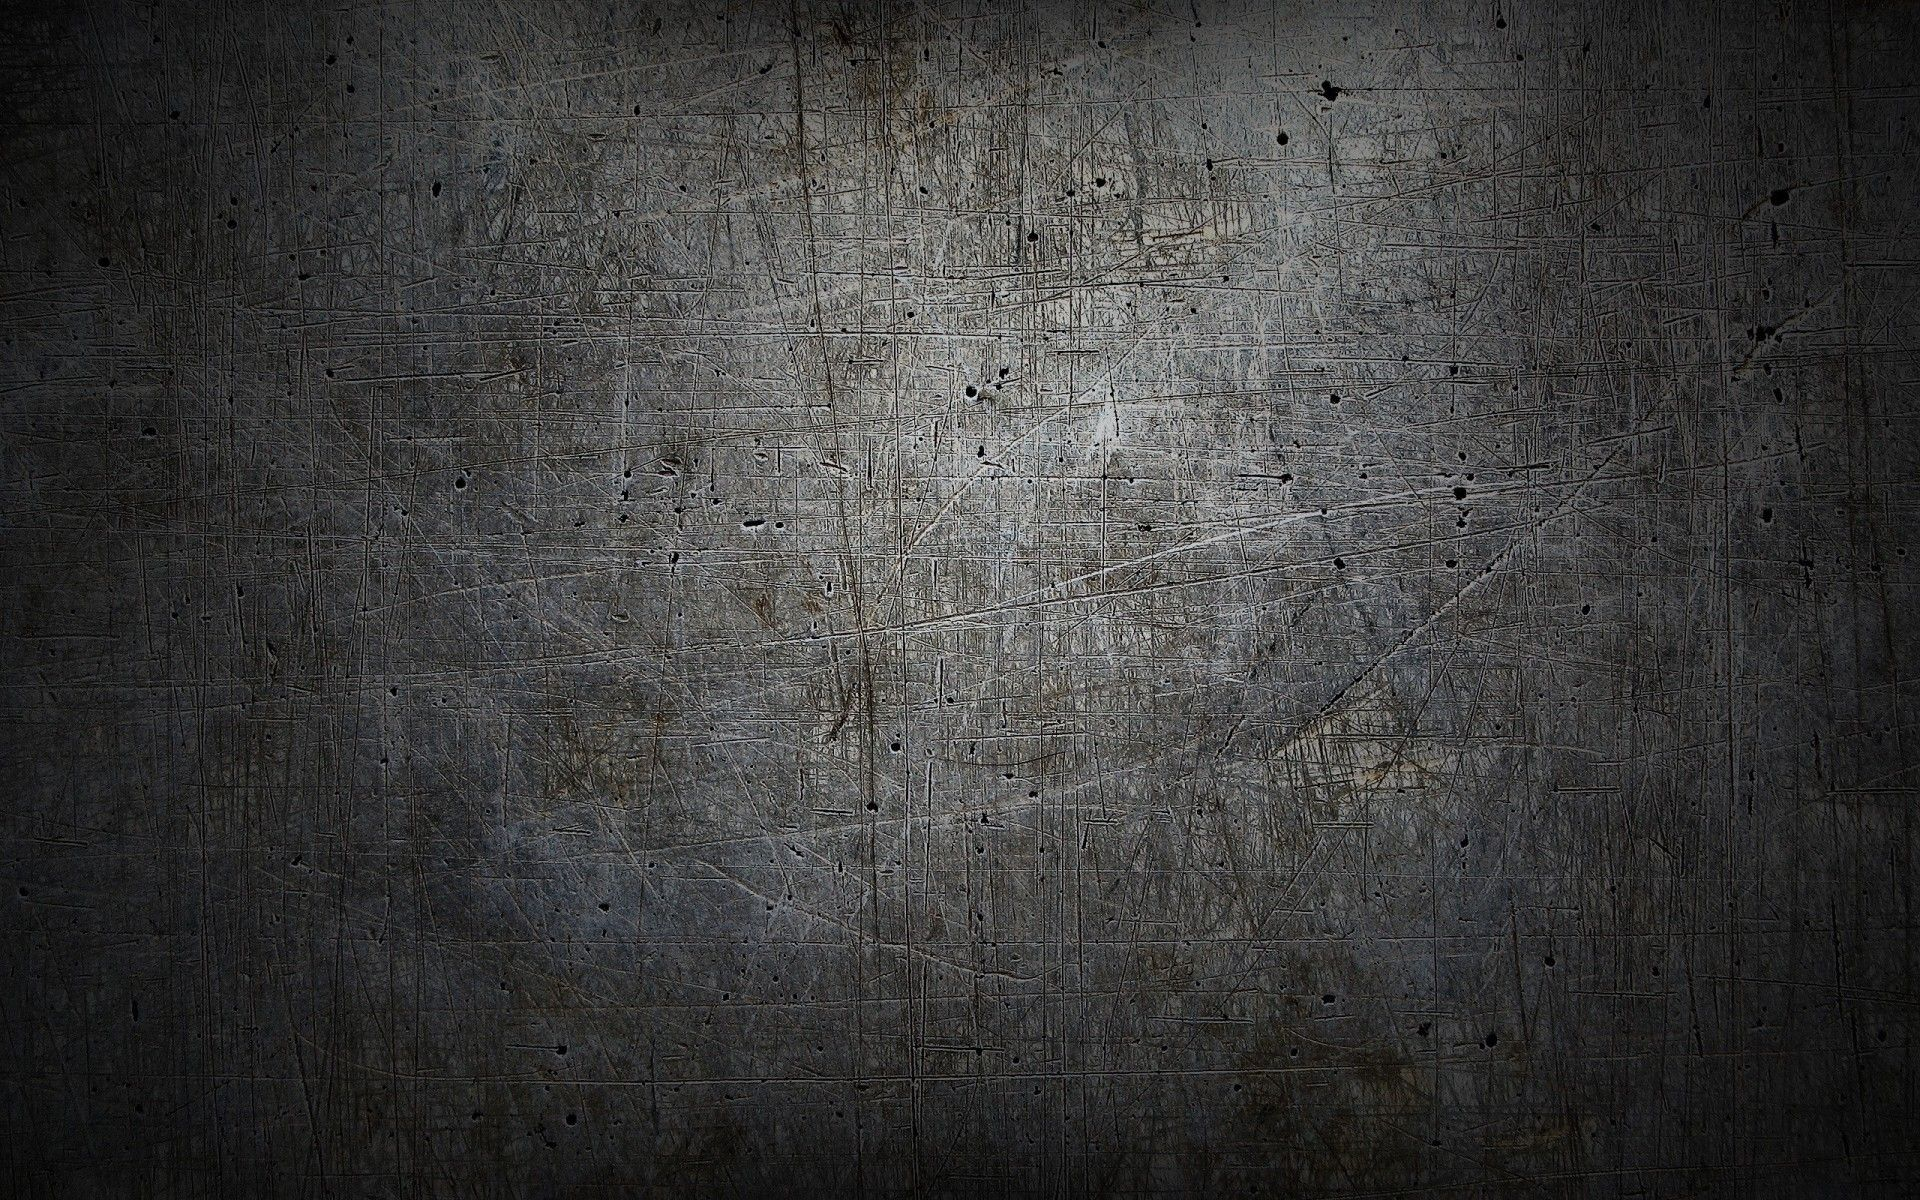 Abstract metal background stock footage video shutterstock 1600 abstract metal background stock footage video shutterstock 16001200 metal backgrounds hd 35 wallpapers voltagebd Choice Image